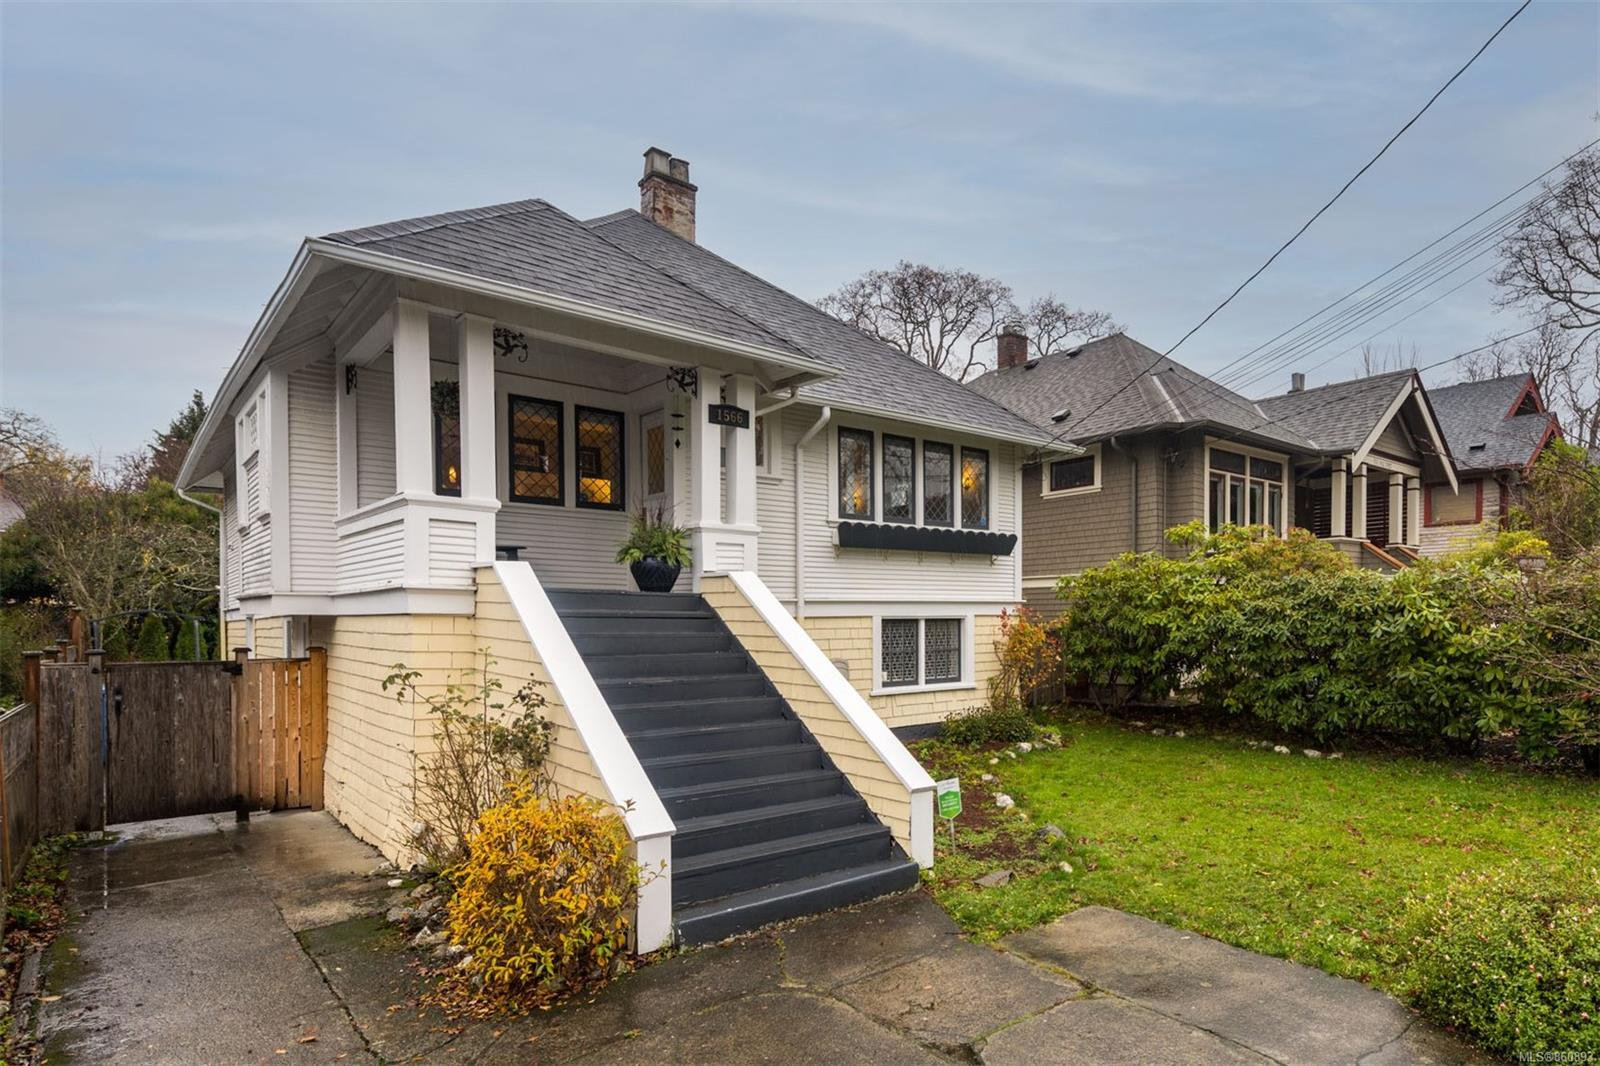 Main Photo: 1566 Yale St in : OB North Oak Bay House for sale (Oak Bay)  : MLS®# 860893